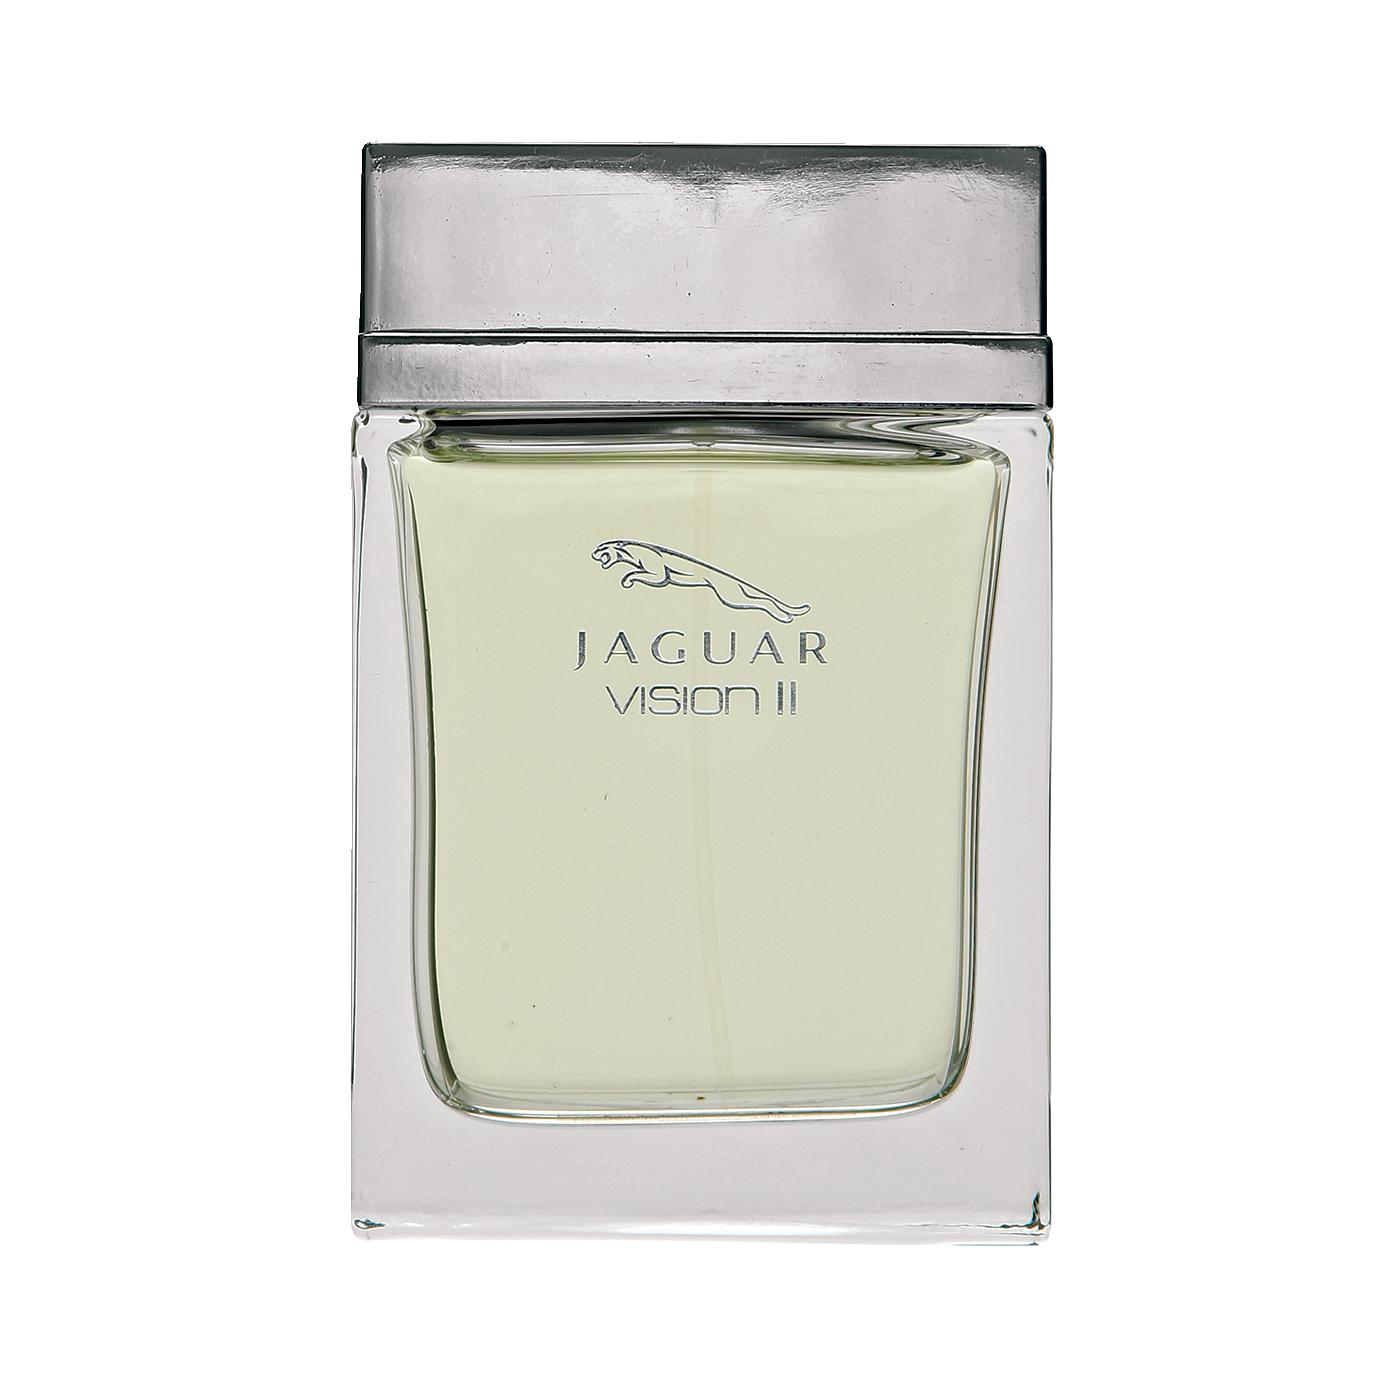 jaguar ii eau de toilette online g nstig kaufen. Black Bedroom Furniture Sets. Home Design Ideas